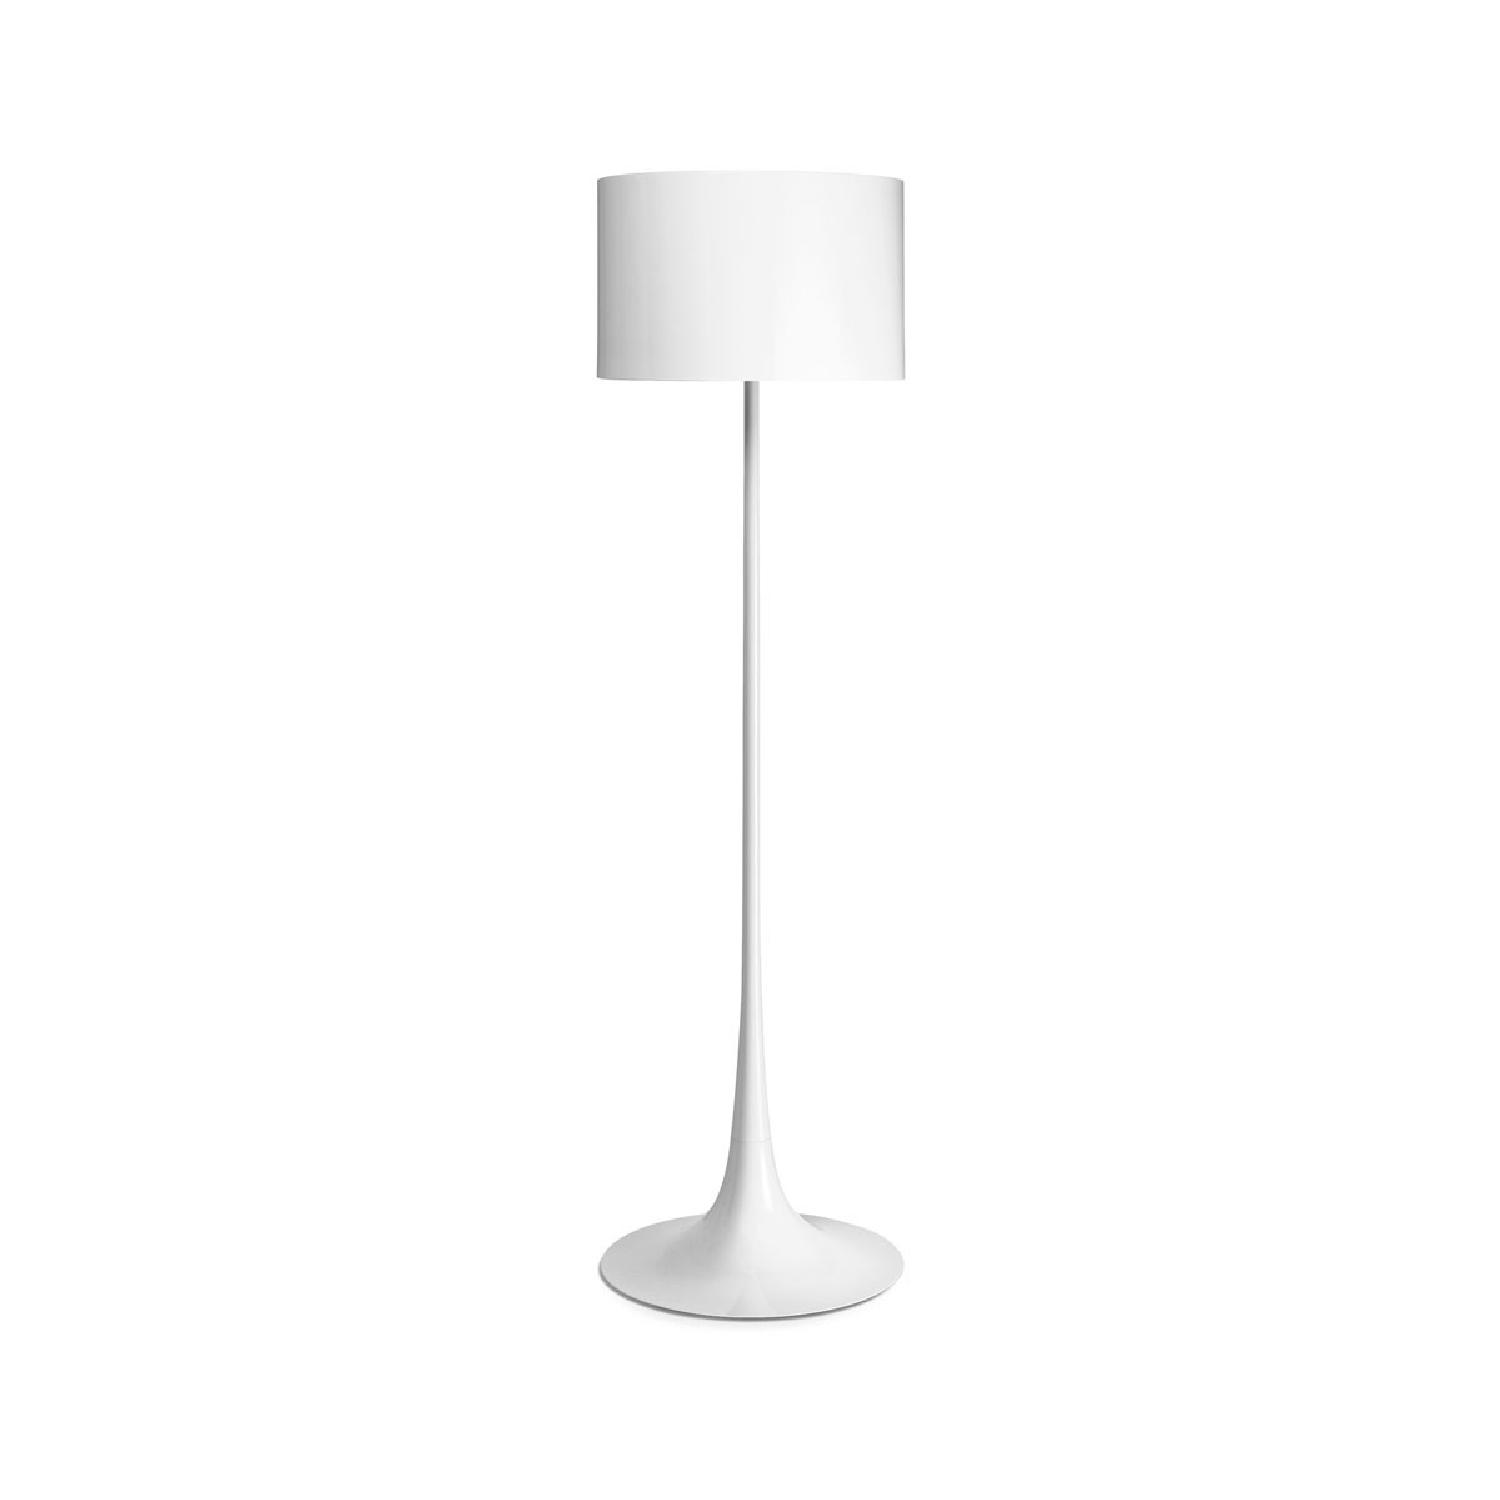 Flos Spun White Floor Lamp